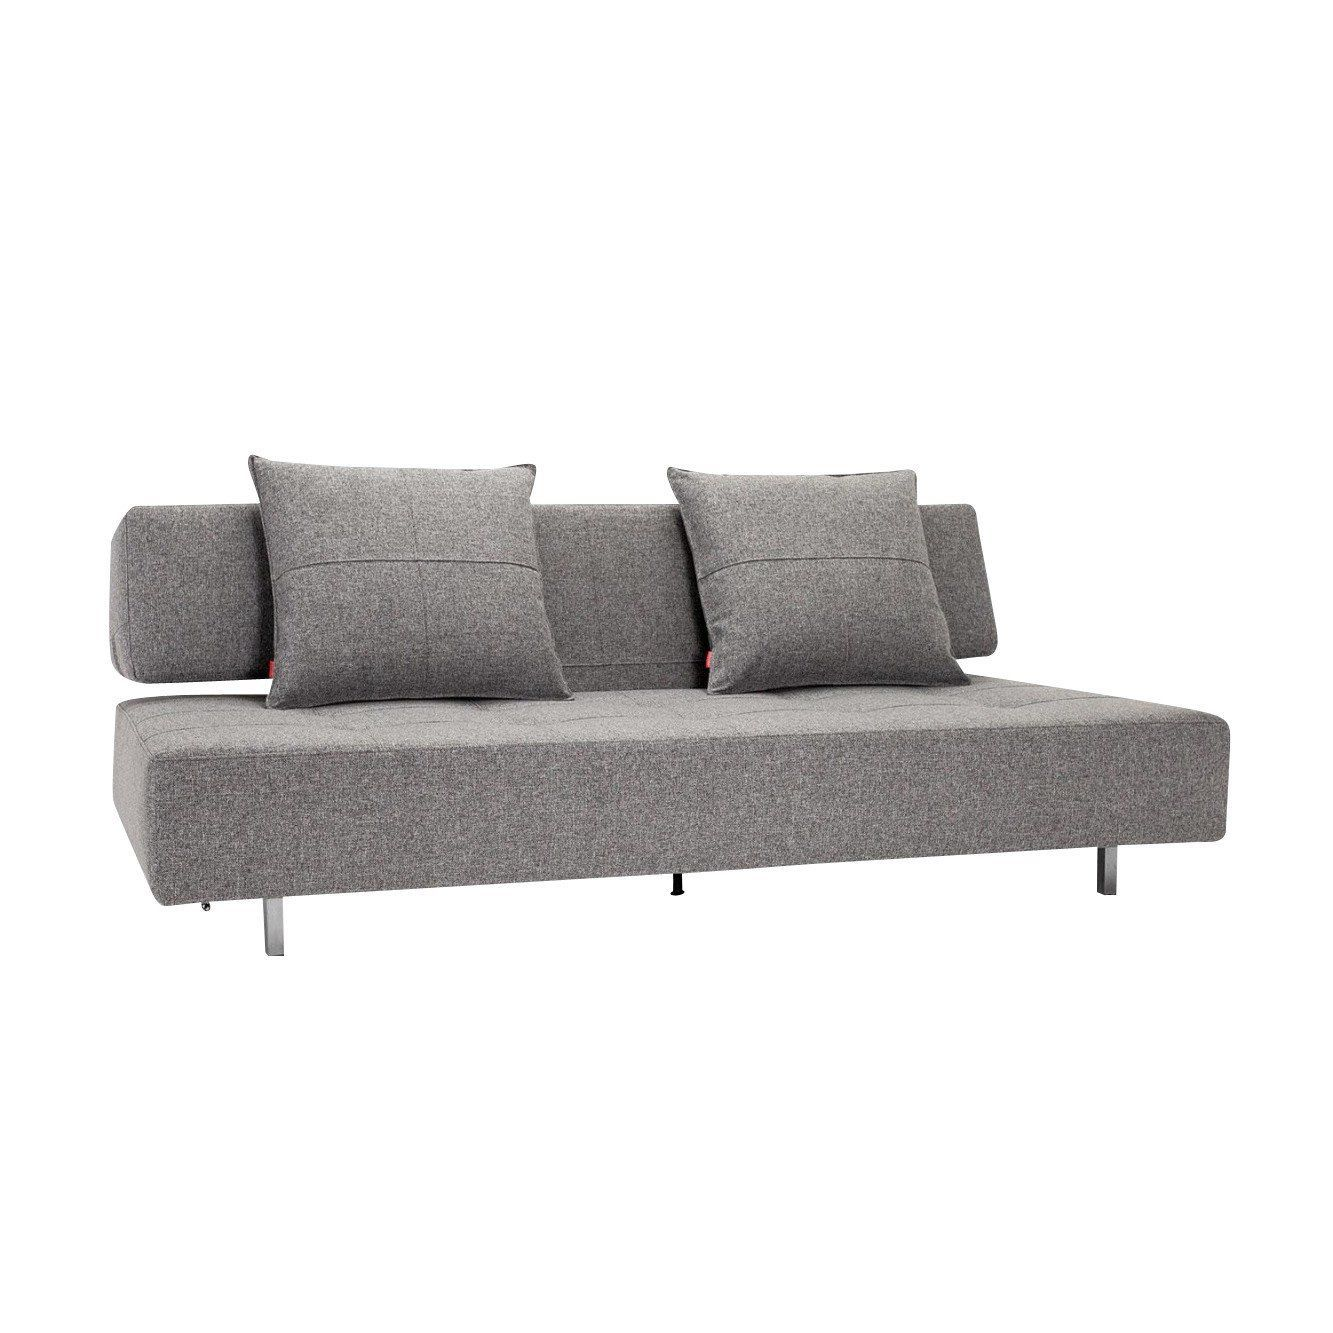 Bon Innovation   Long Horn Excess Sofa Bed   Dark Grey/fabric/cover Dess.